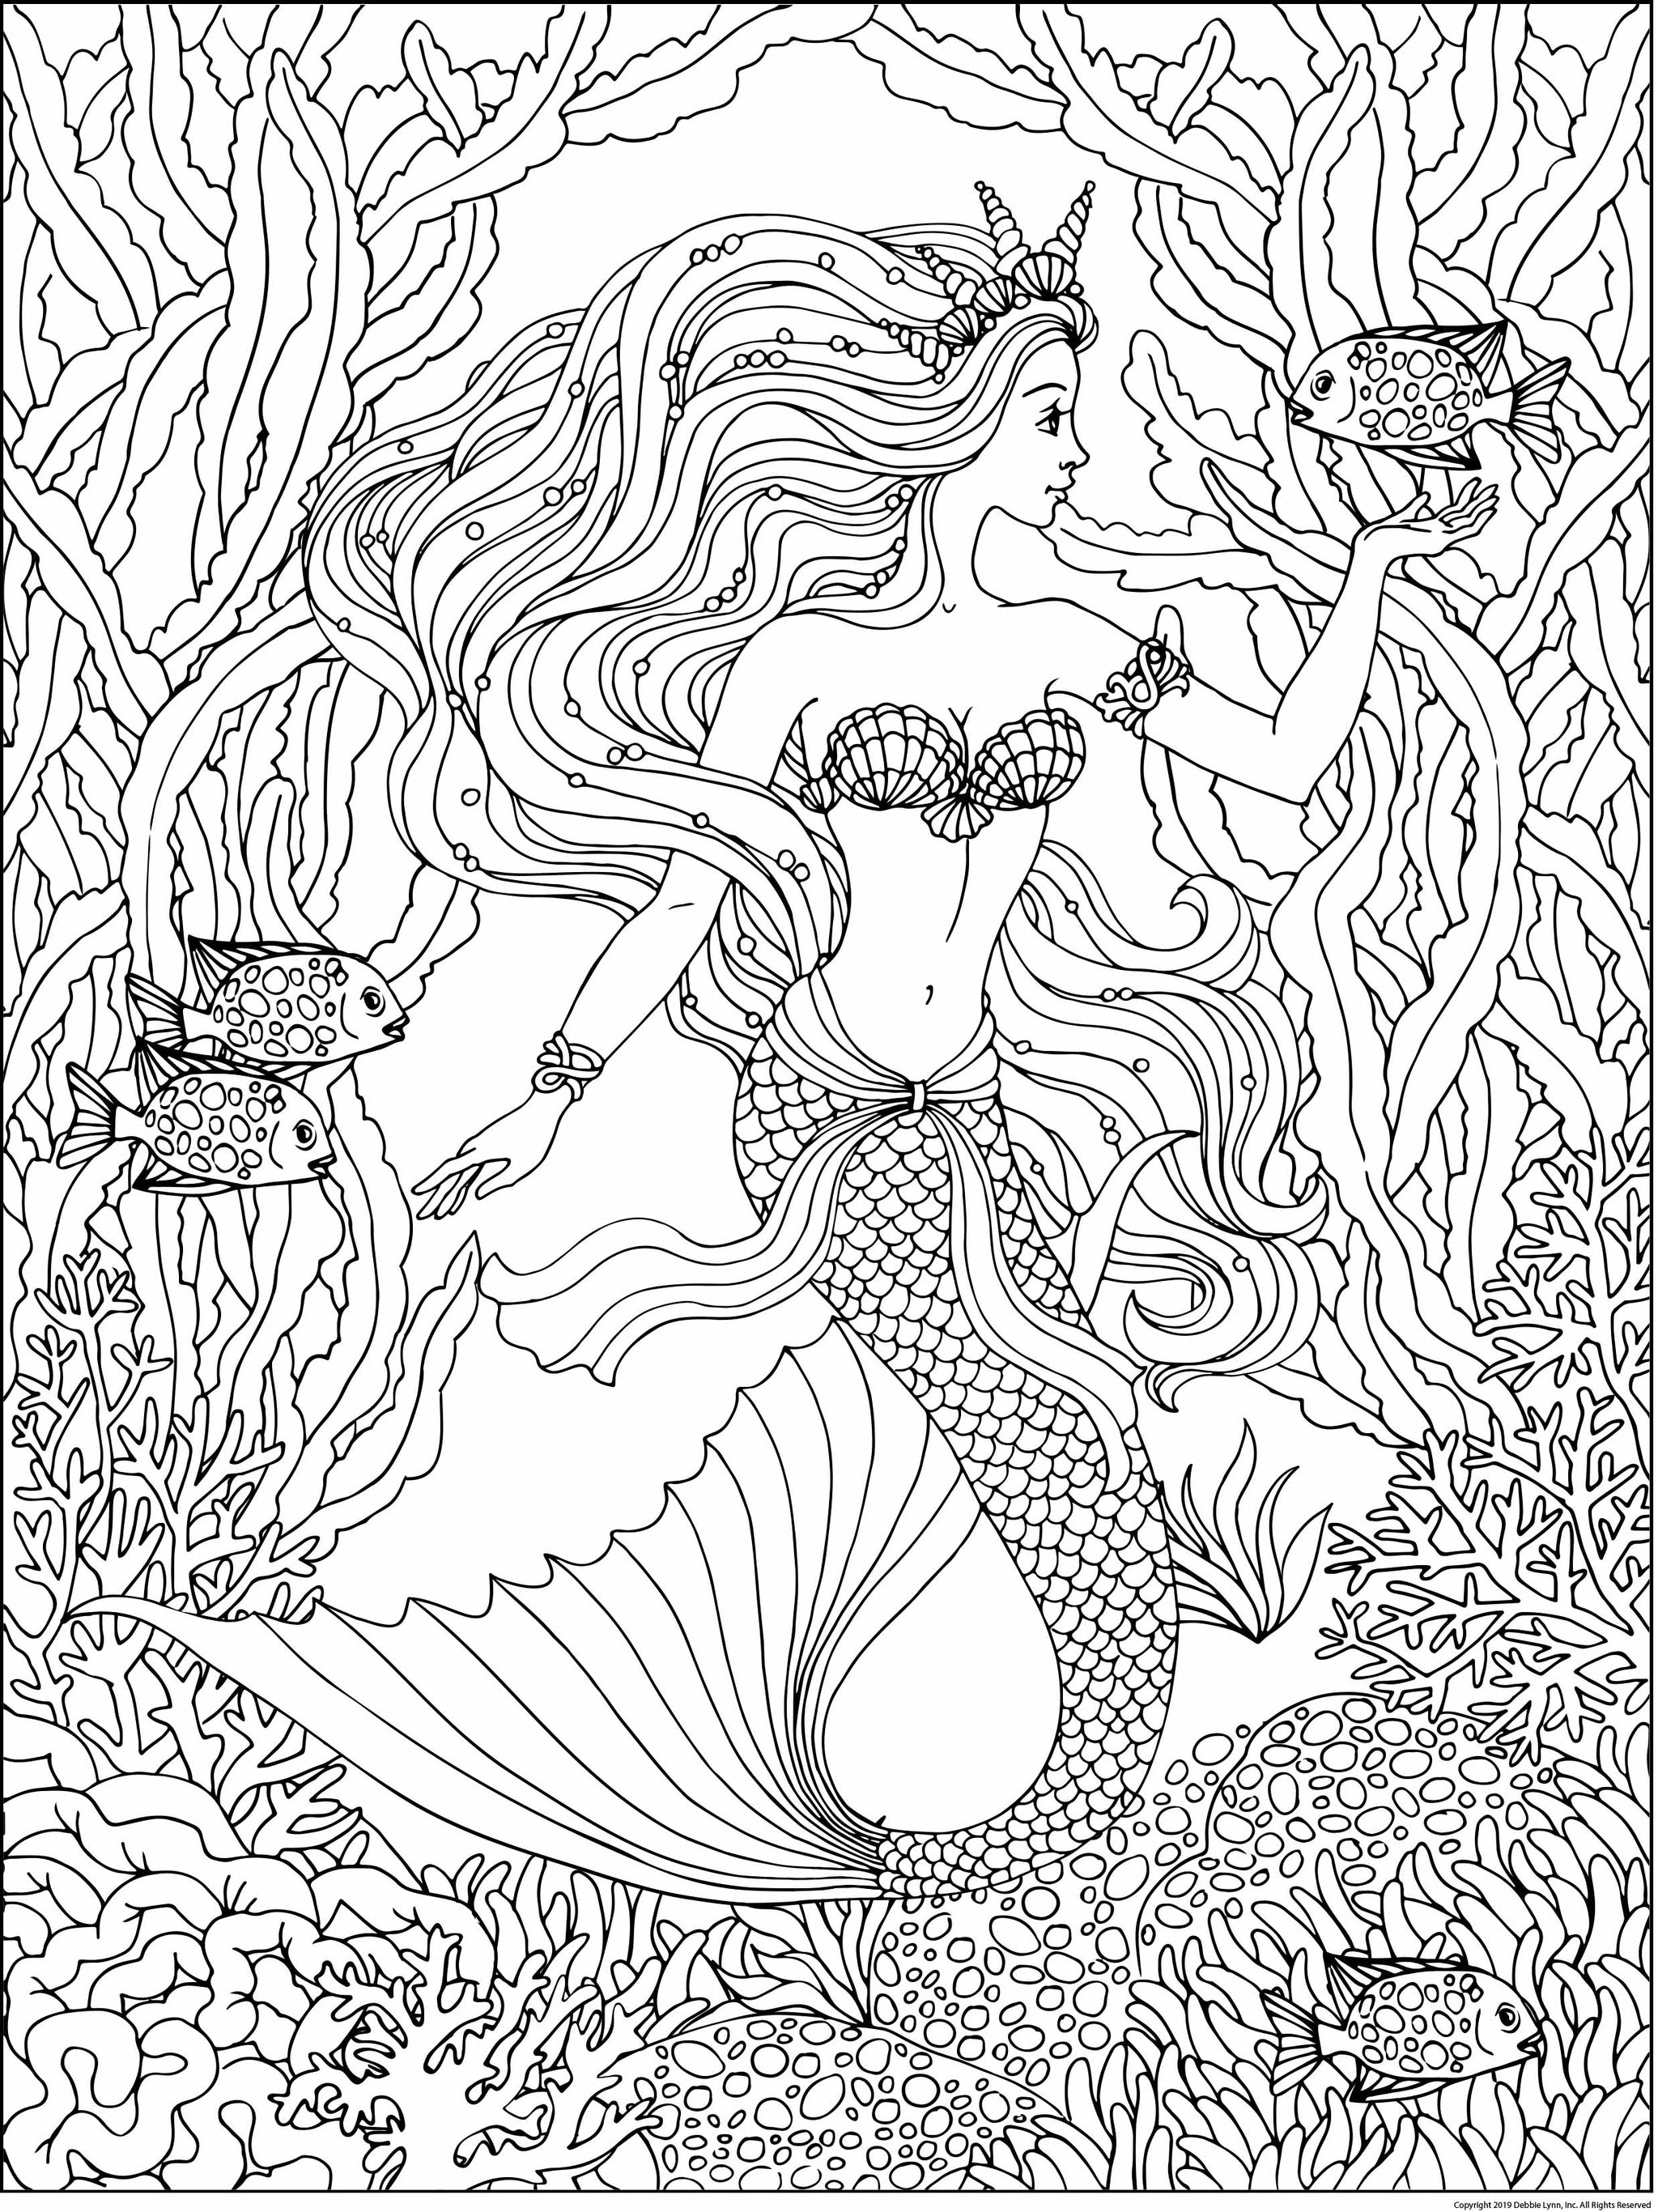 poster art coloring sheet creative ink 4 posters